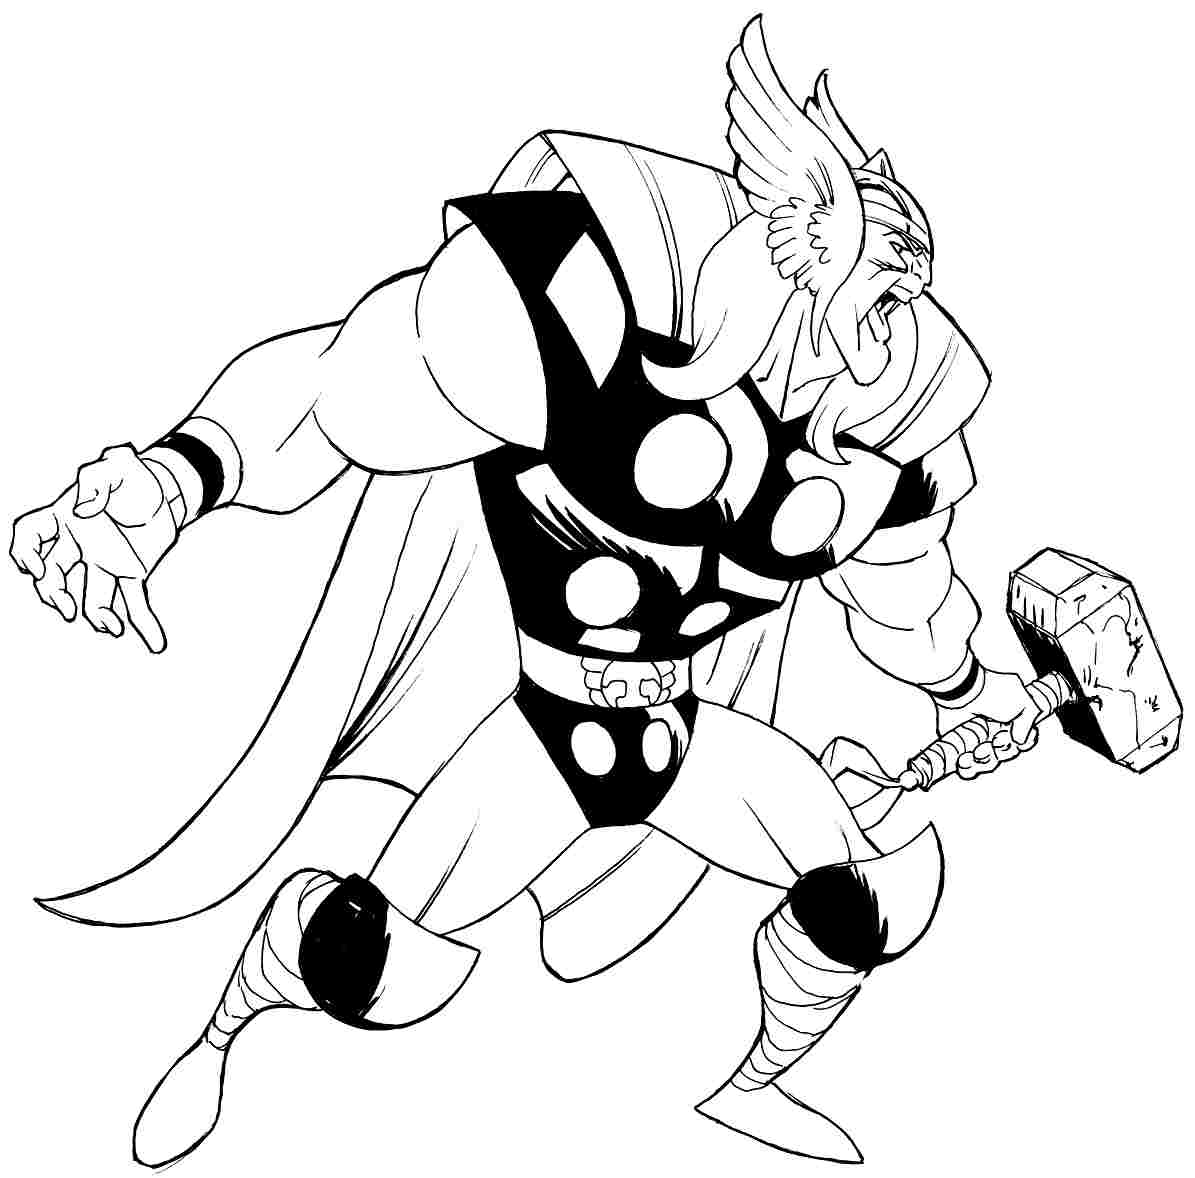 thor coloring pages thor coloring download thor coloring for free 2019 thor pages coloring